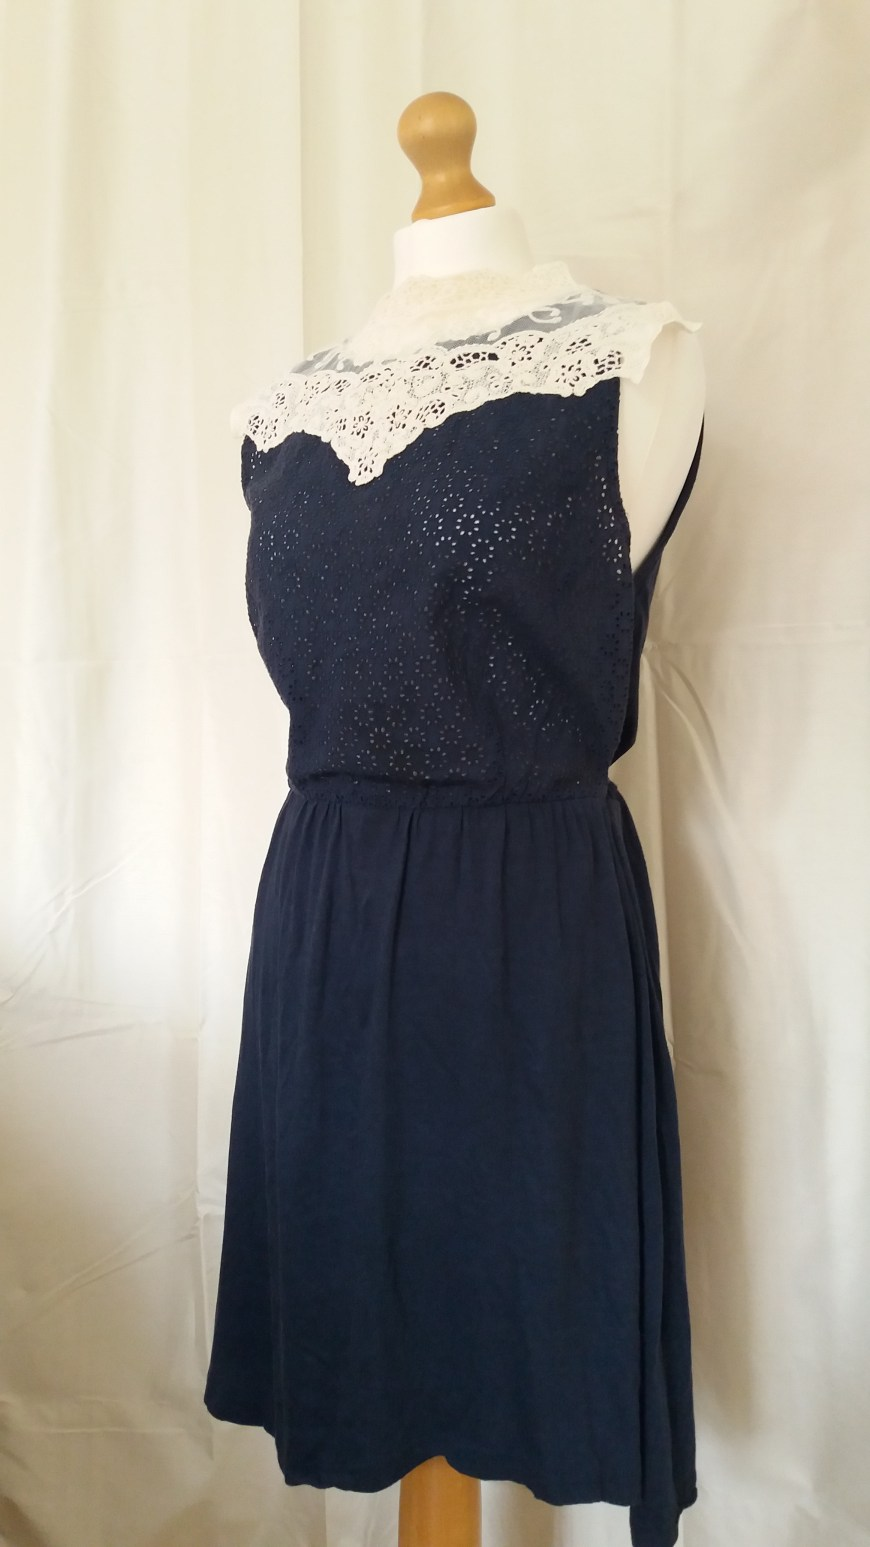 Emily Southcombe blog photo - navy cotton dress upcycled with ivory lace detail to the neckline